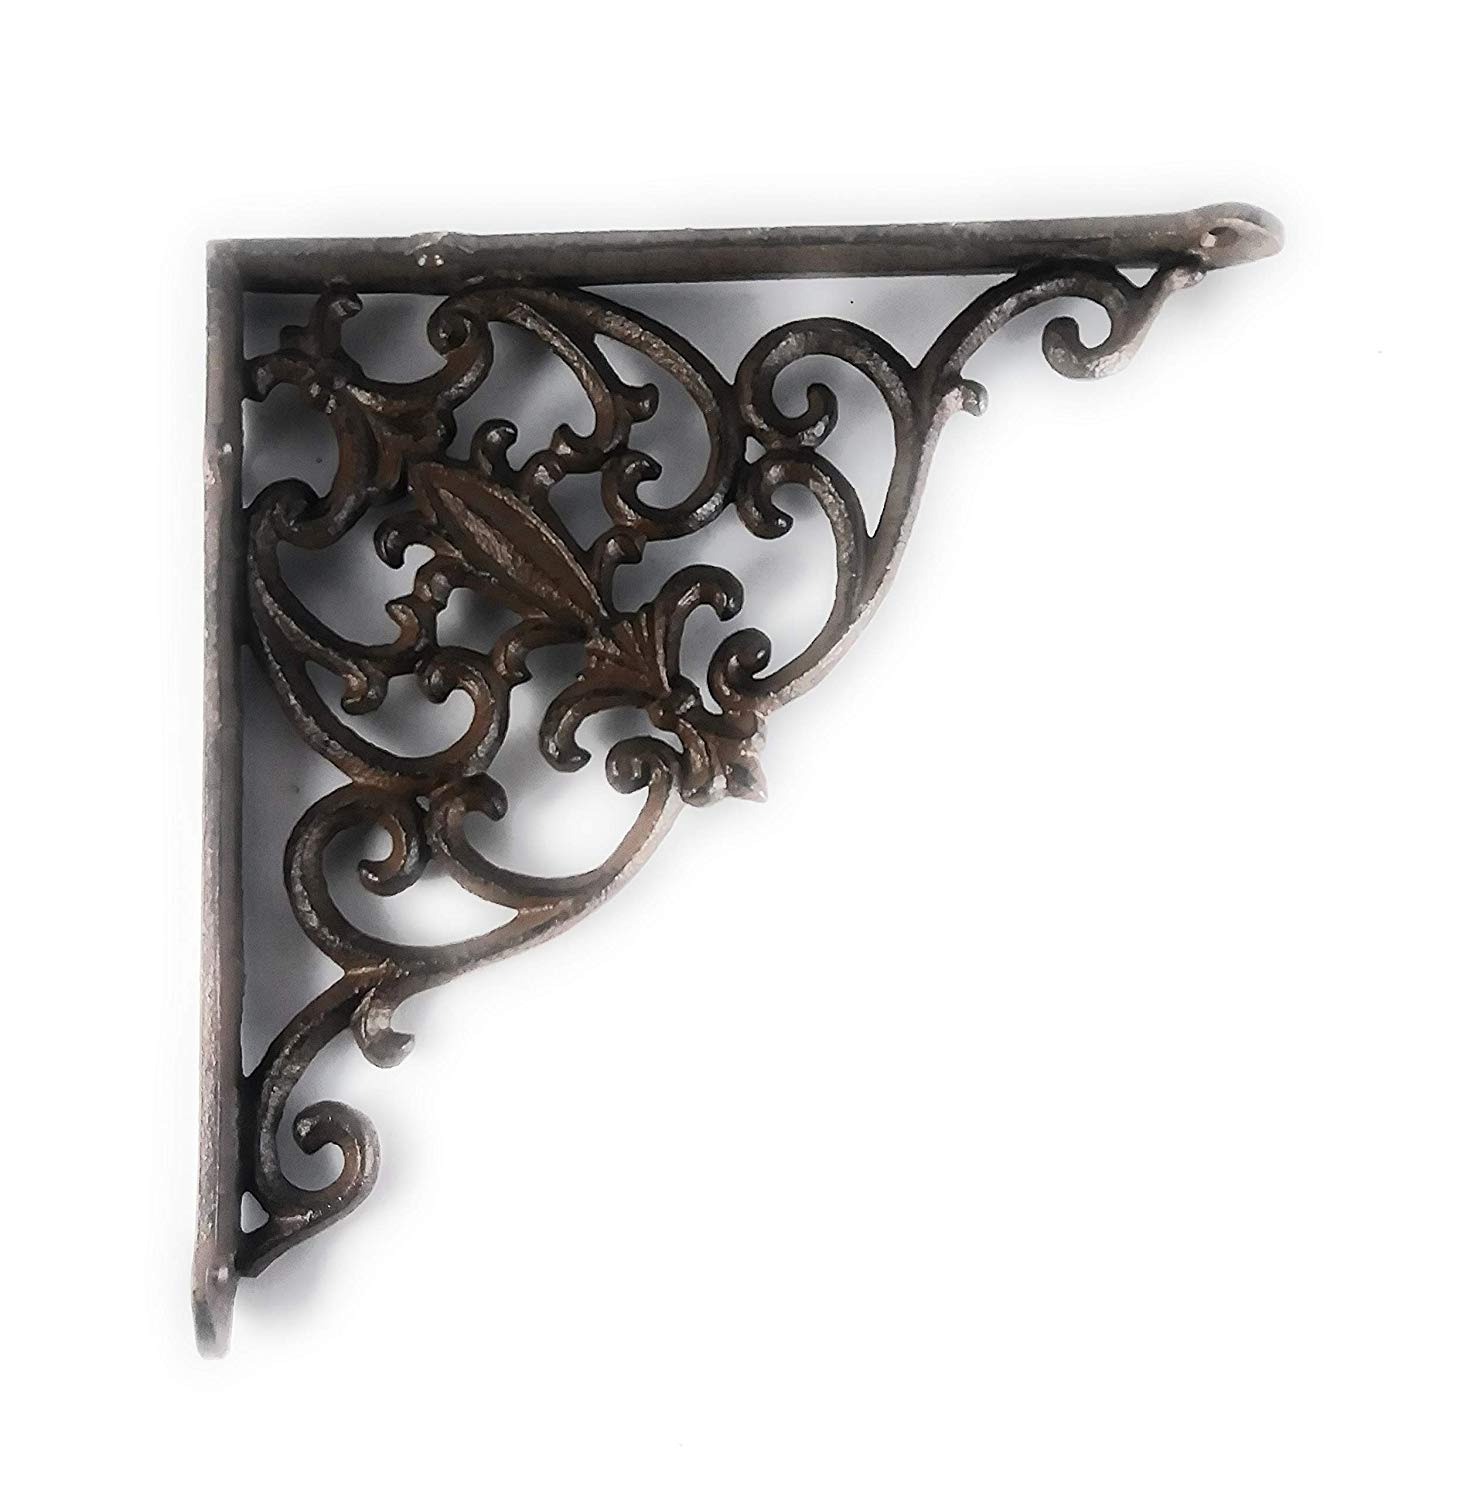 Aunt Chris' Products - Heavy Cast Iron Brown - 10 Inch - Thick Victorian Shelf Bracket - Scroll Design - All-Purpose Hanger - Dark Brown - Primitive Design - Indoor or Outdoor Use